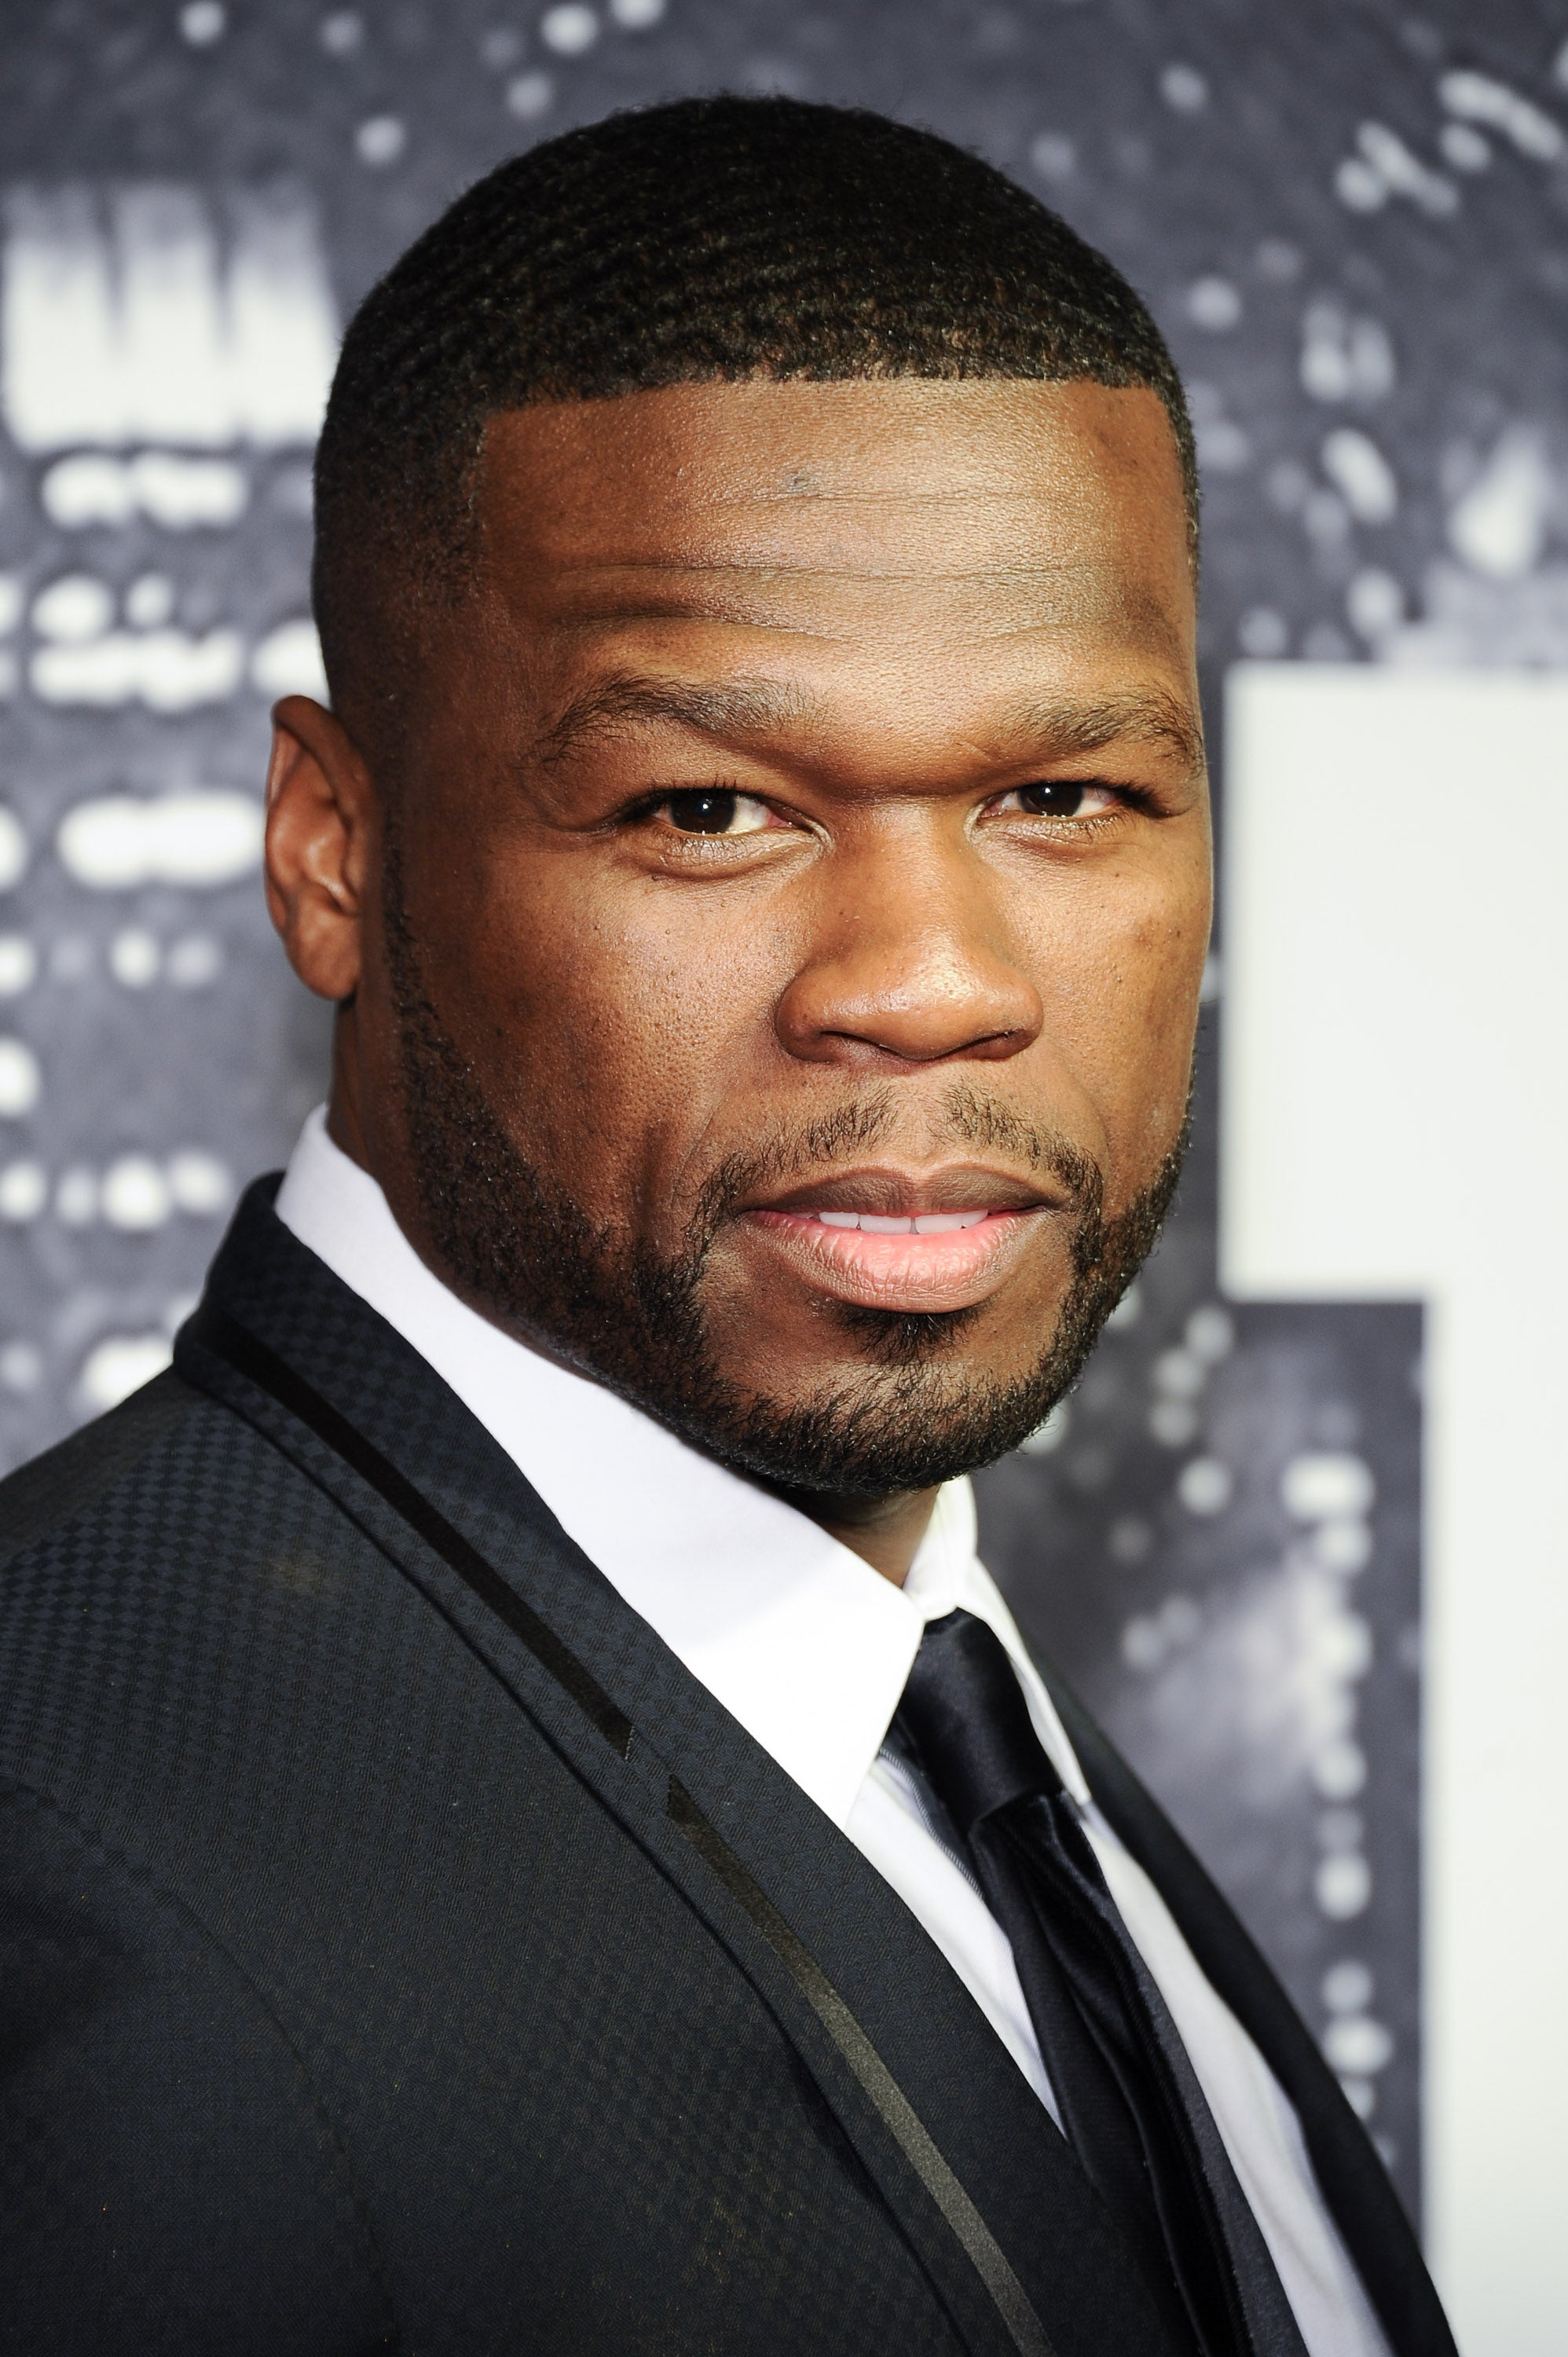 50 Cent lashes out at Golden Globes over Power snub